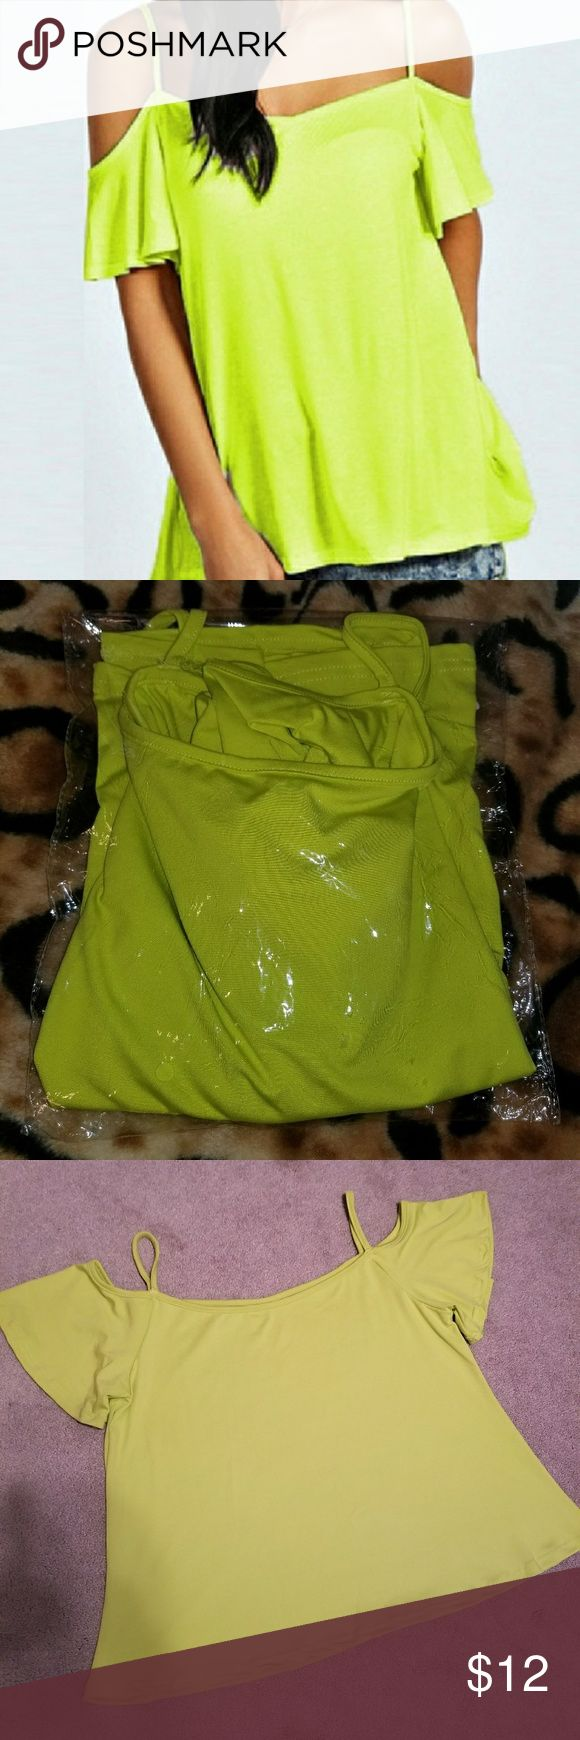 NWT Neon Cold Shoulder Brand new never worn, ordered online. Neon yellow green cold shoulder short sleeve blouse. Size Medium. Pictures with and without flash. True to color  Smoke free home Ships same day or next day Free People Tops Blouses